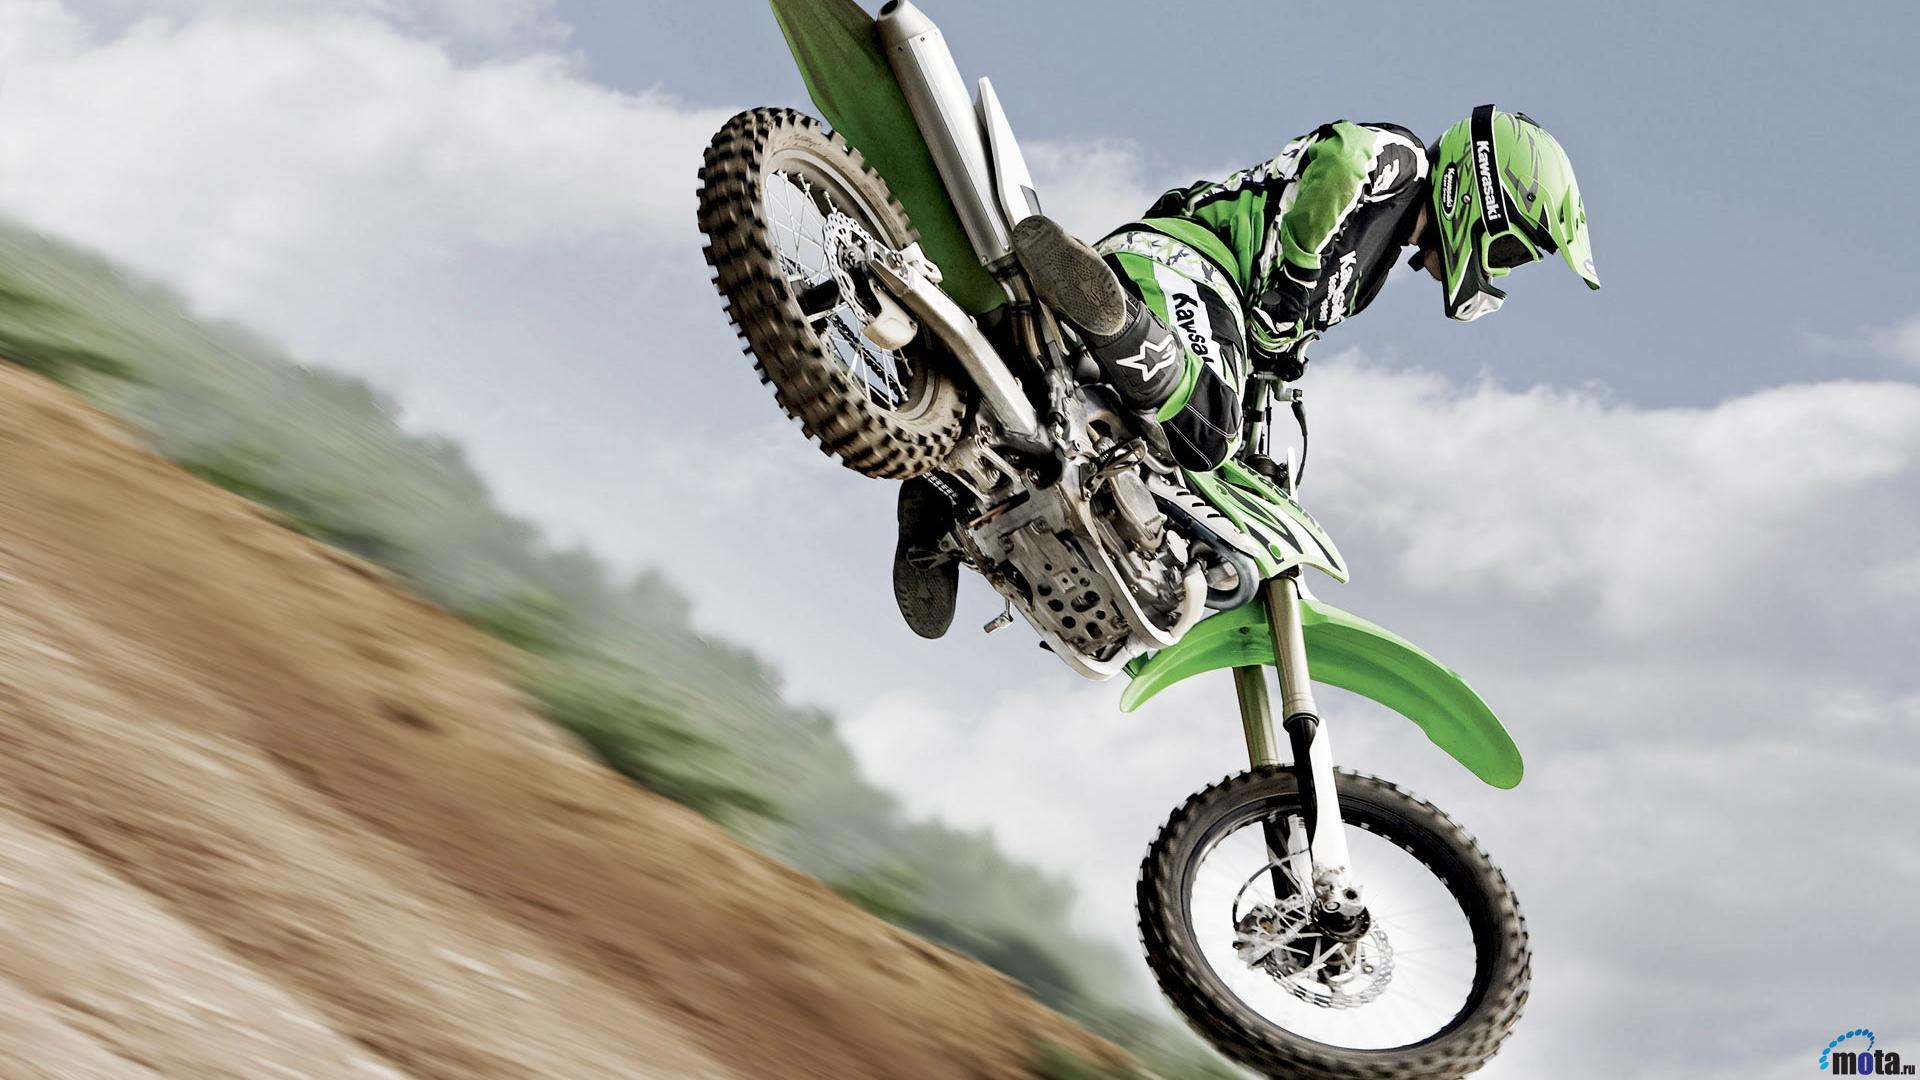 motocross wallpaper hd